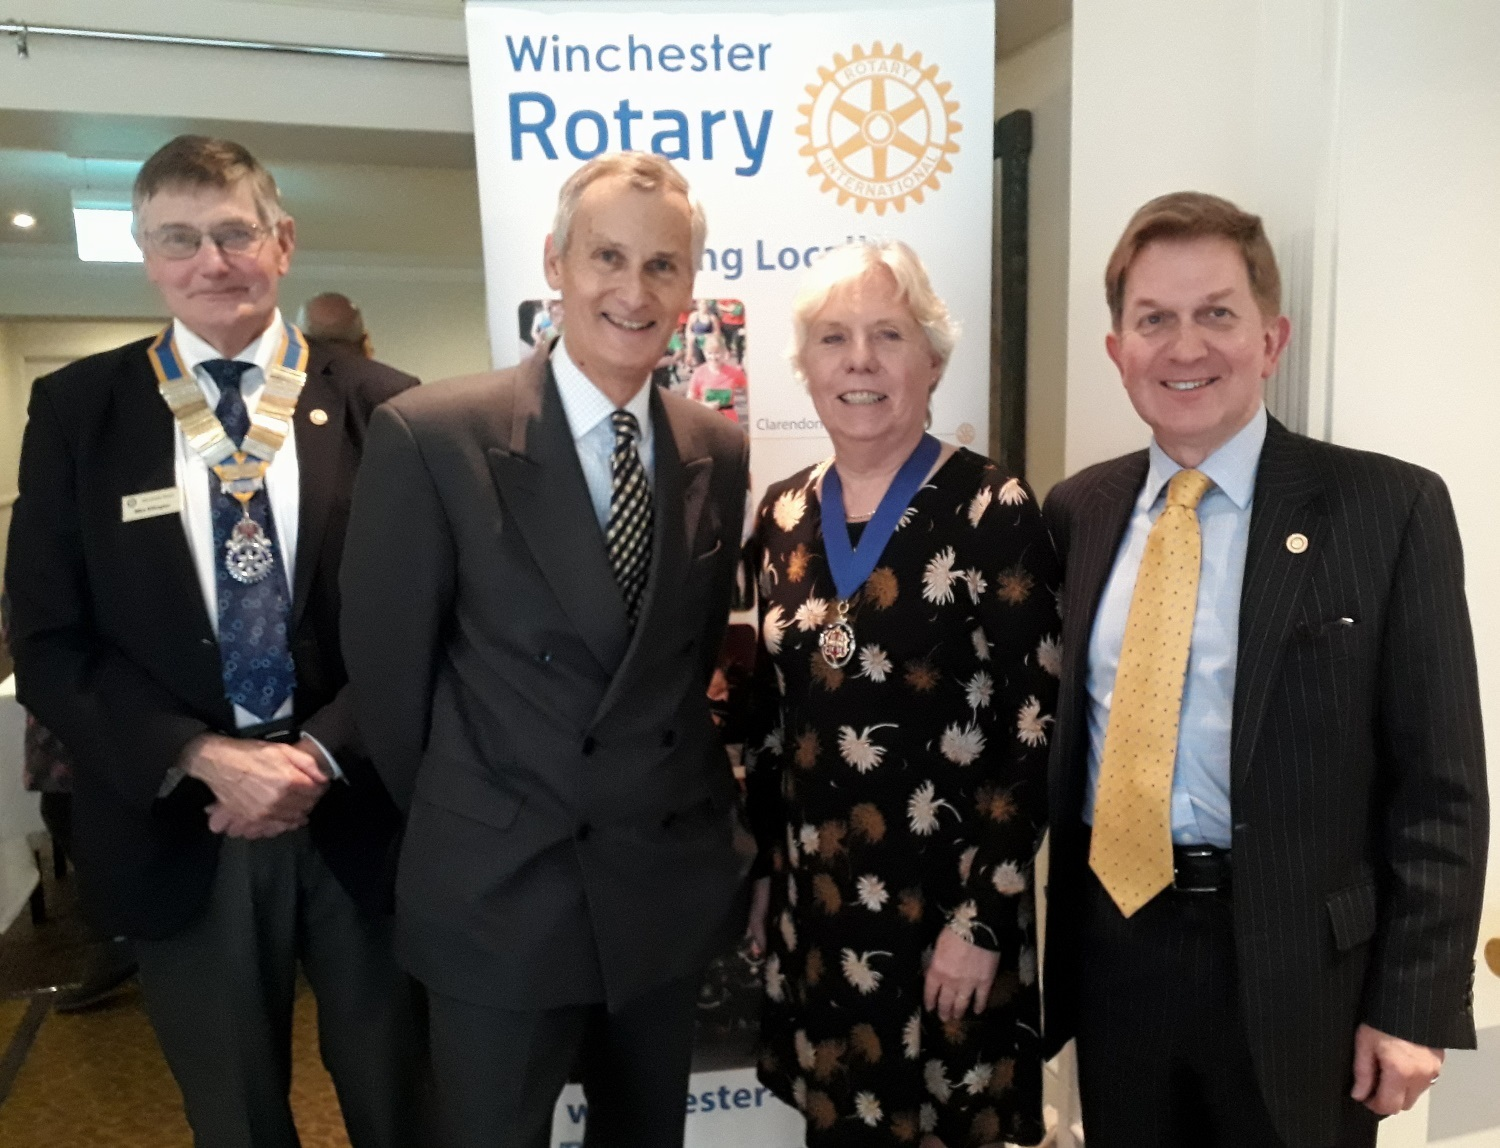 Winchester Rotary's big business lunch coined a success